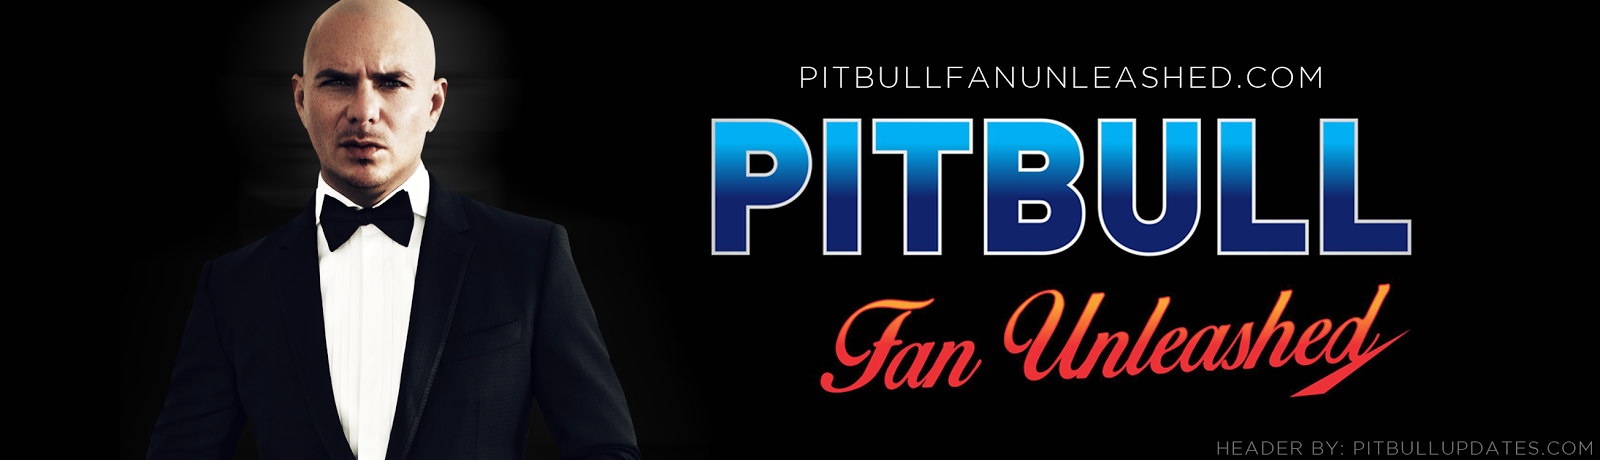 <b>Pitbull Fan Unleashed!</b>